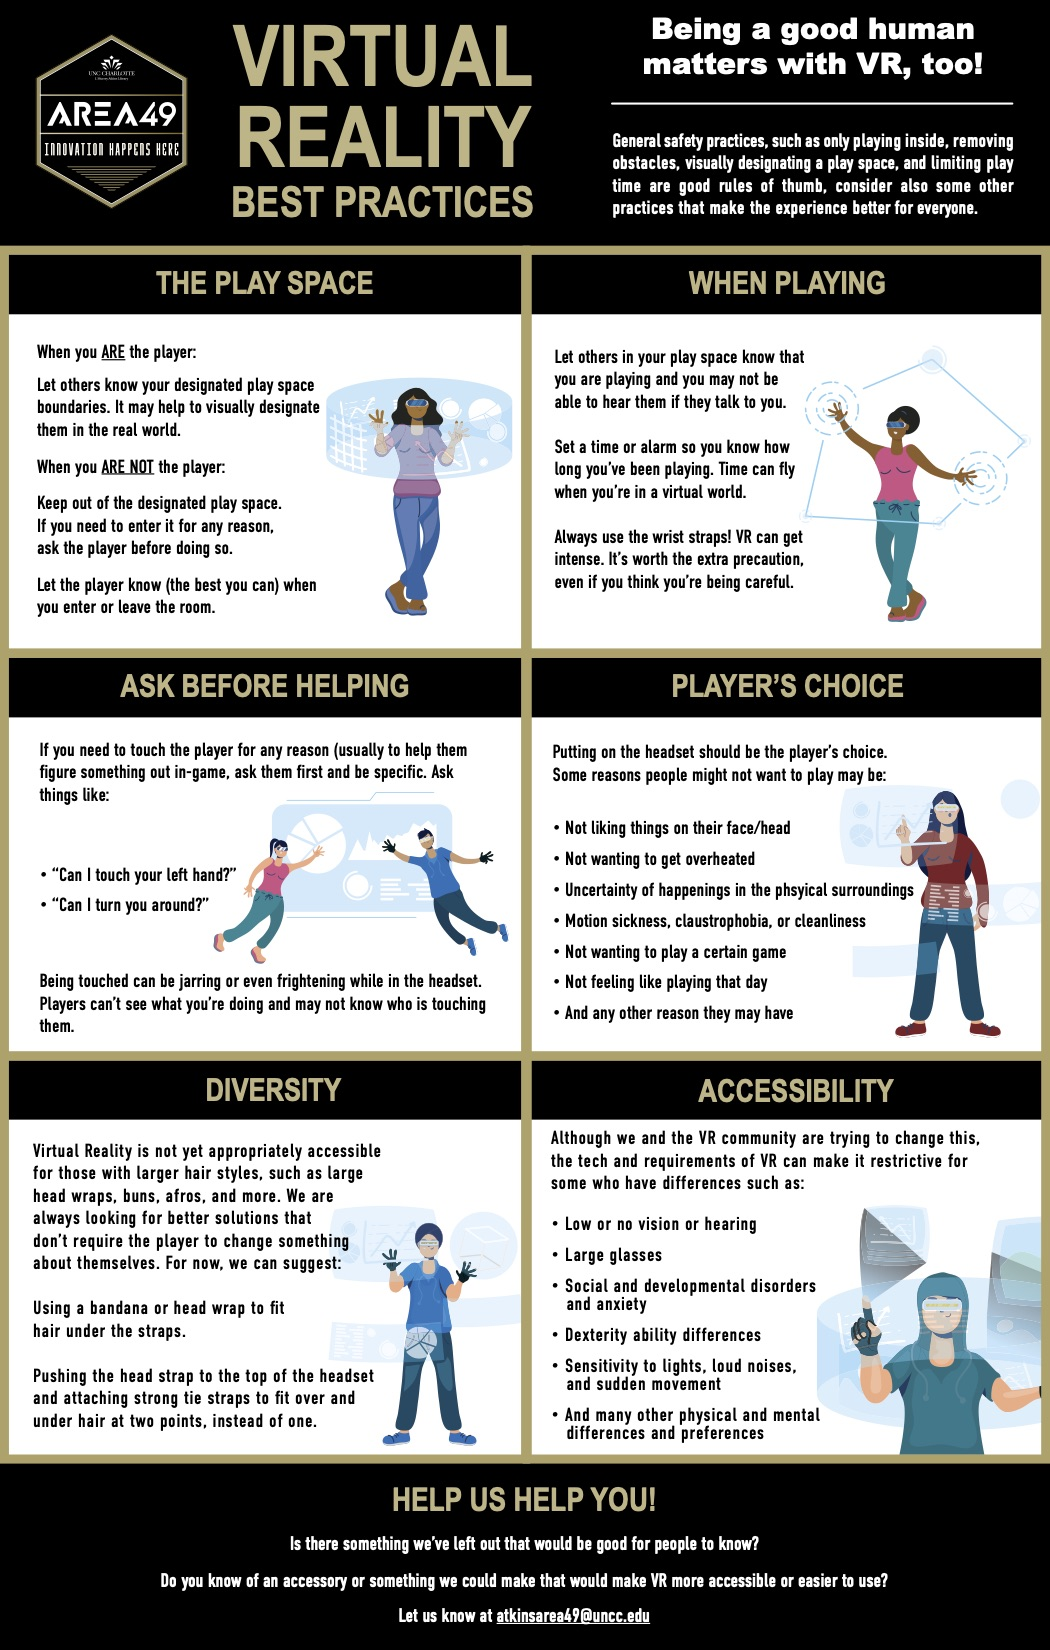 Virtual Reality Best Practices Infographic